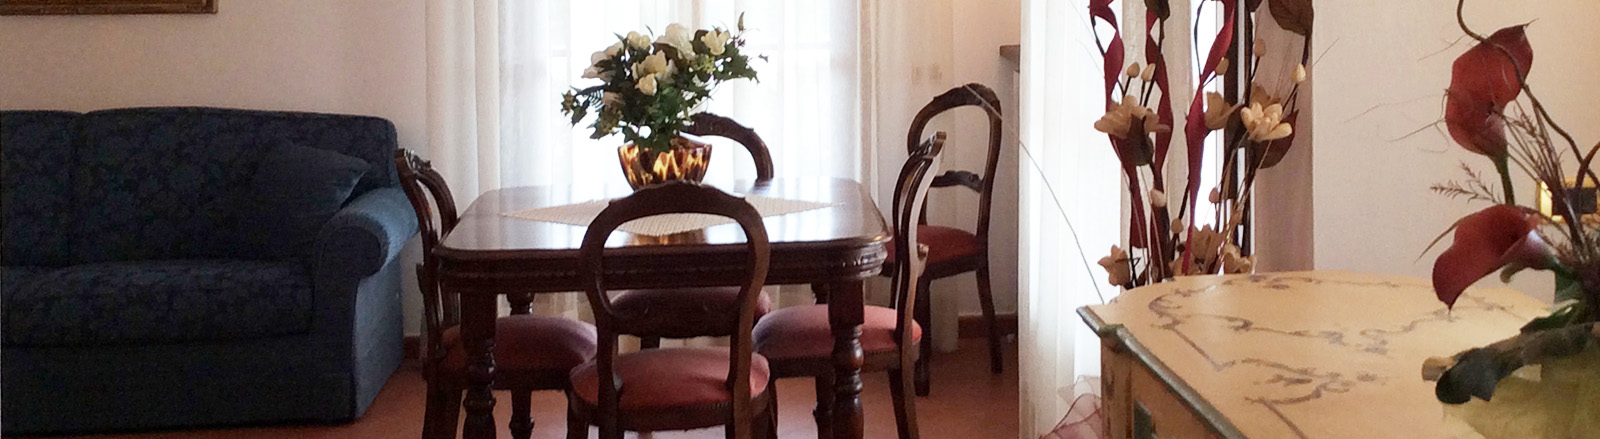 Bed and Breakfast Il Porticato